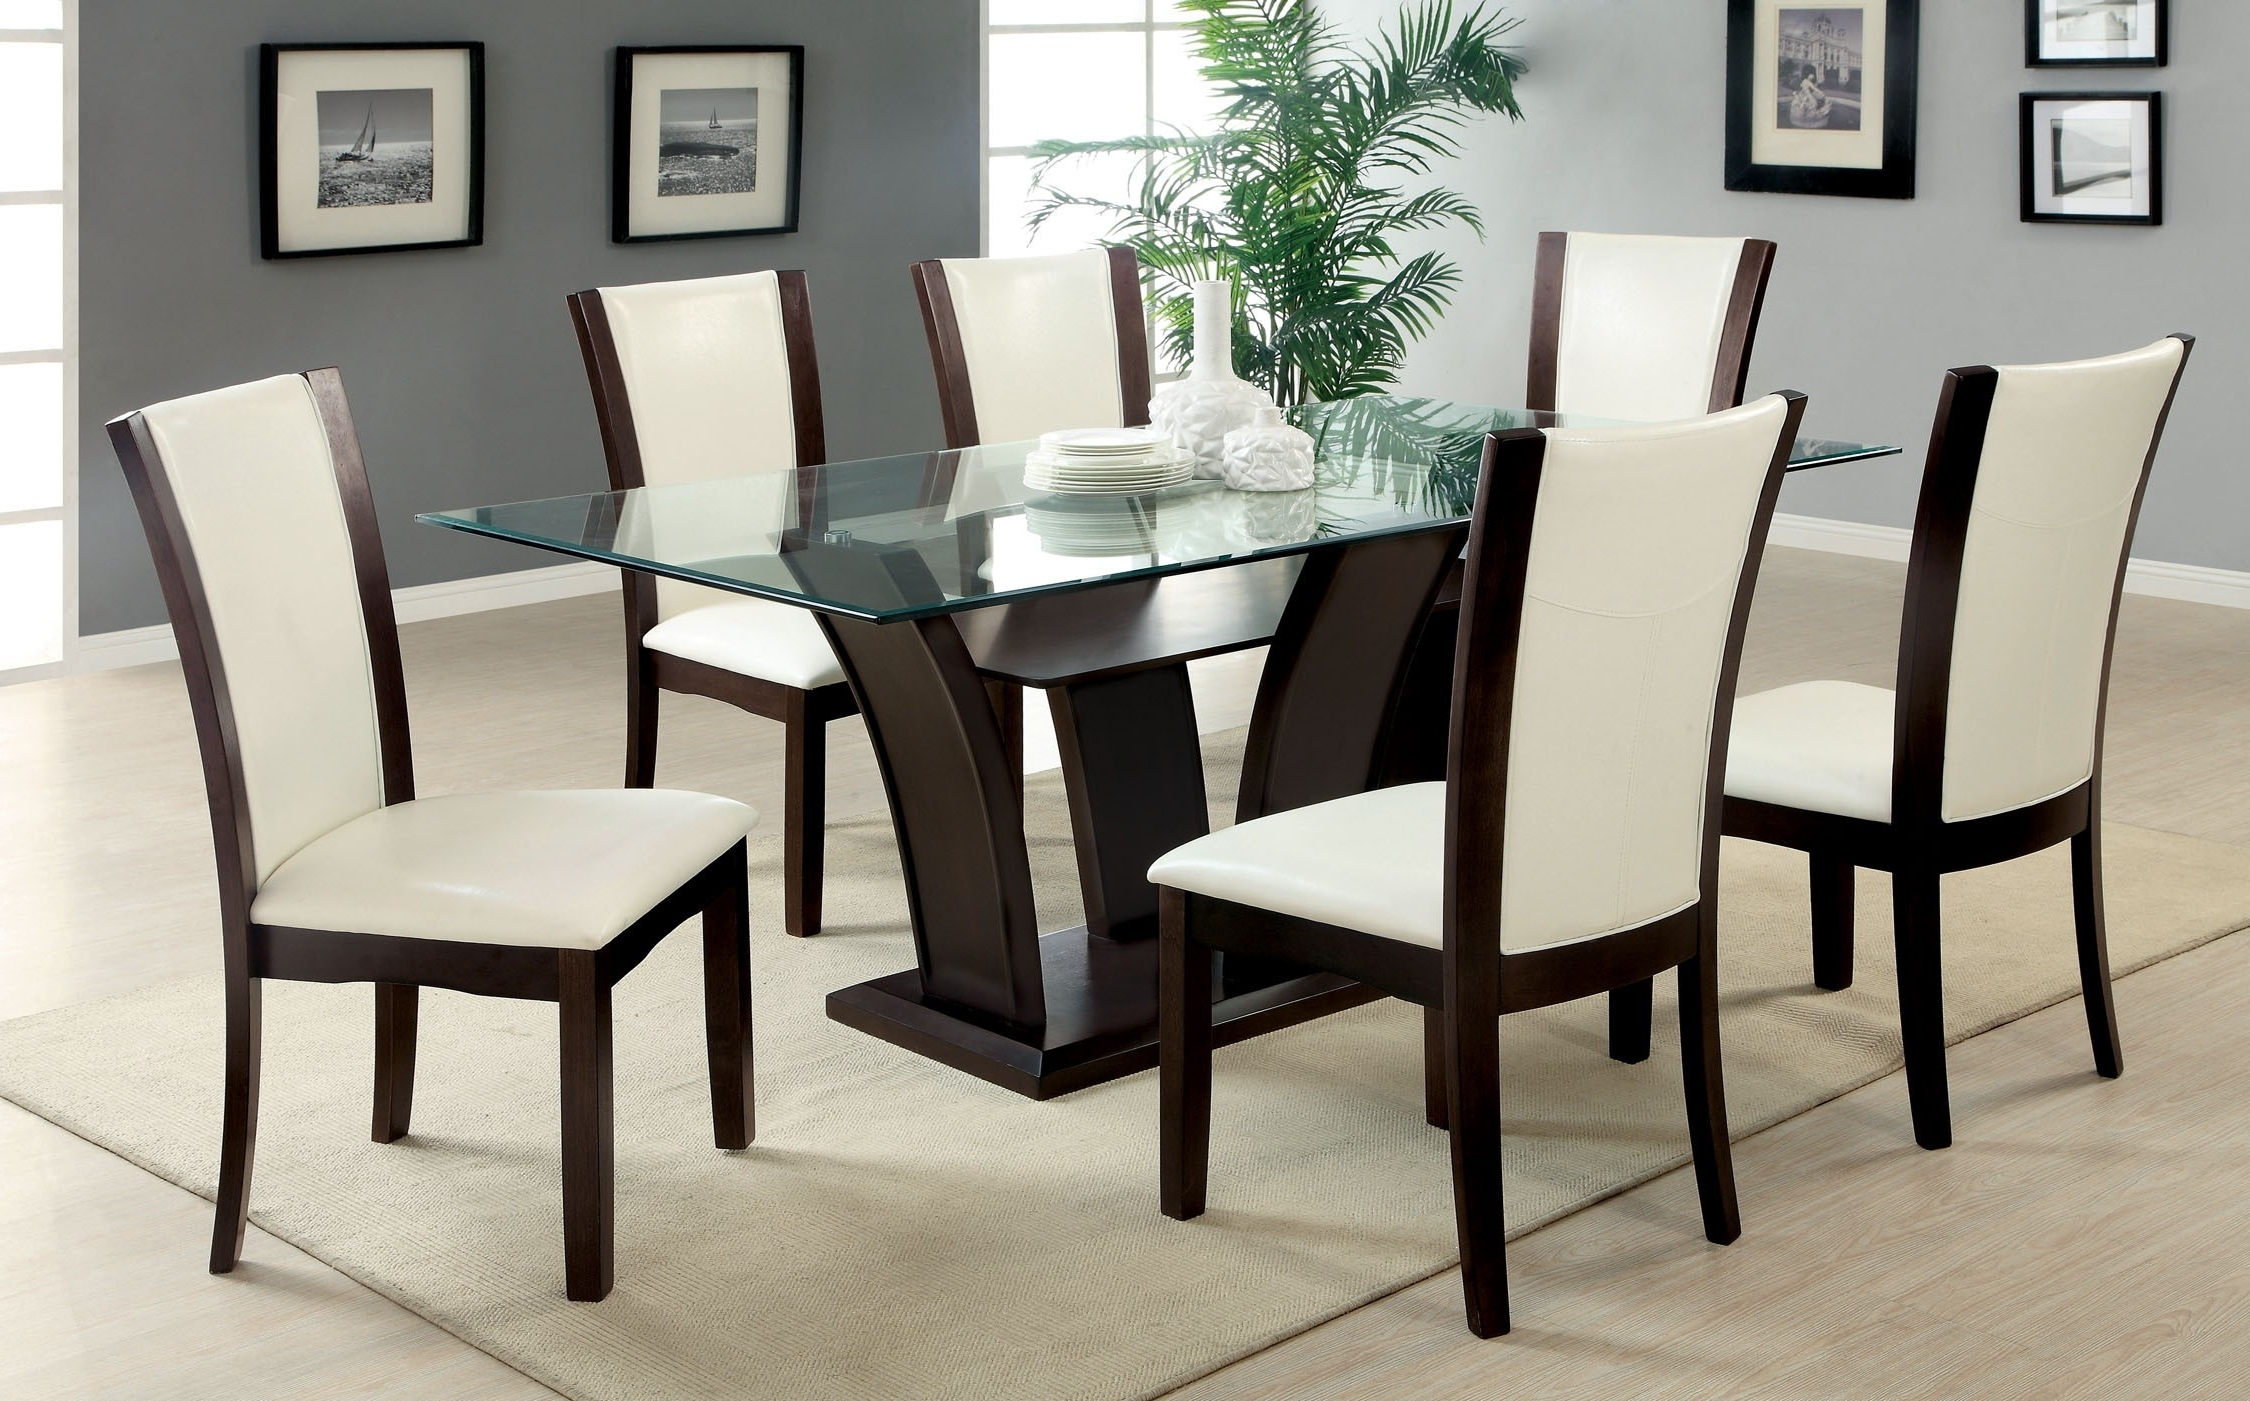 Glass Dining Table Sets 6 Chairs • Table Setting Ideas within Most Recent Glass Dining Tables With 6 Chairs